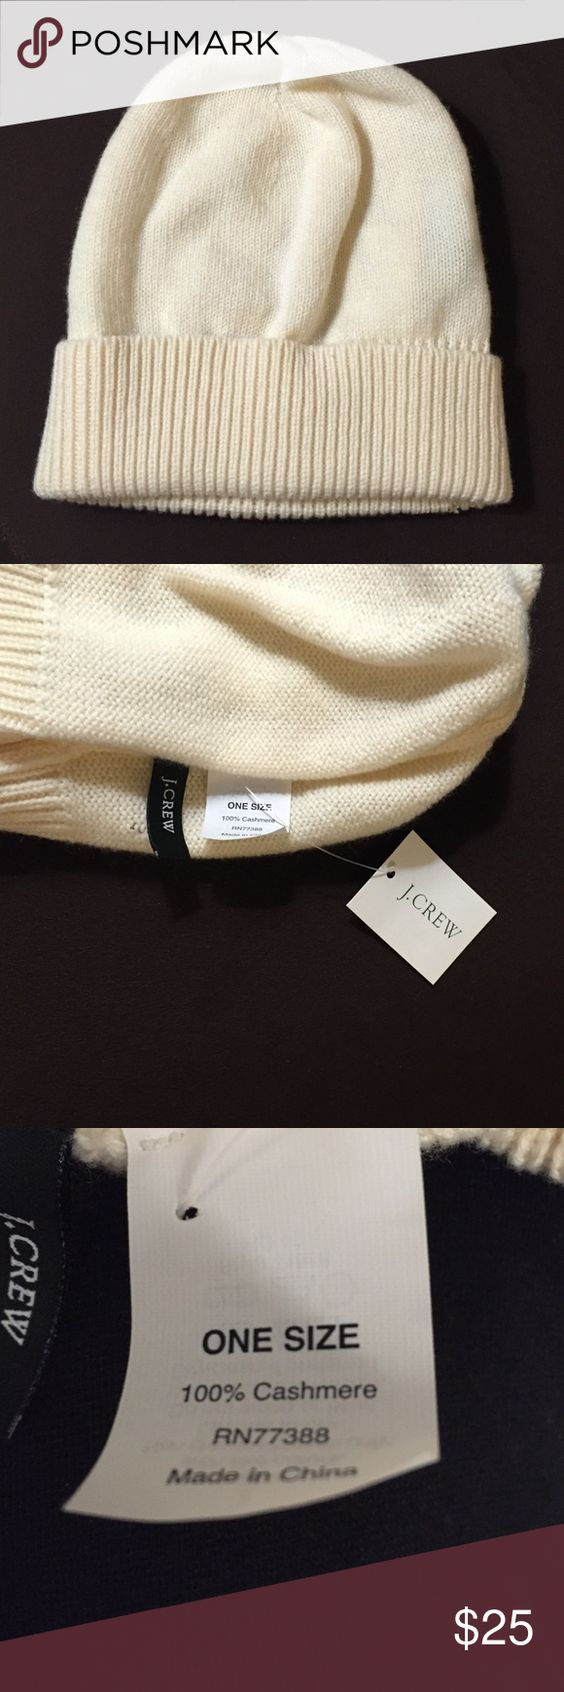 J. Crew Cream 100% Cashmere Hat New with tags. J. Crew cream 100% cashmere hat. One size fits all. J. Crew Accessories Hats